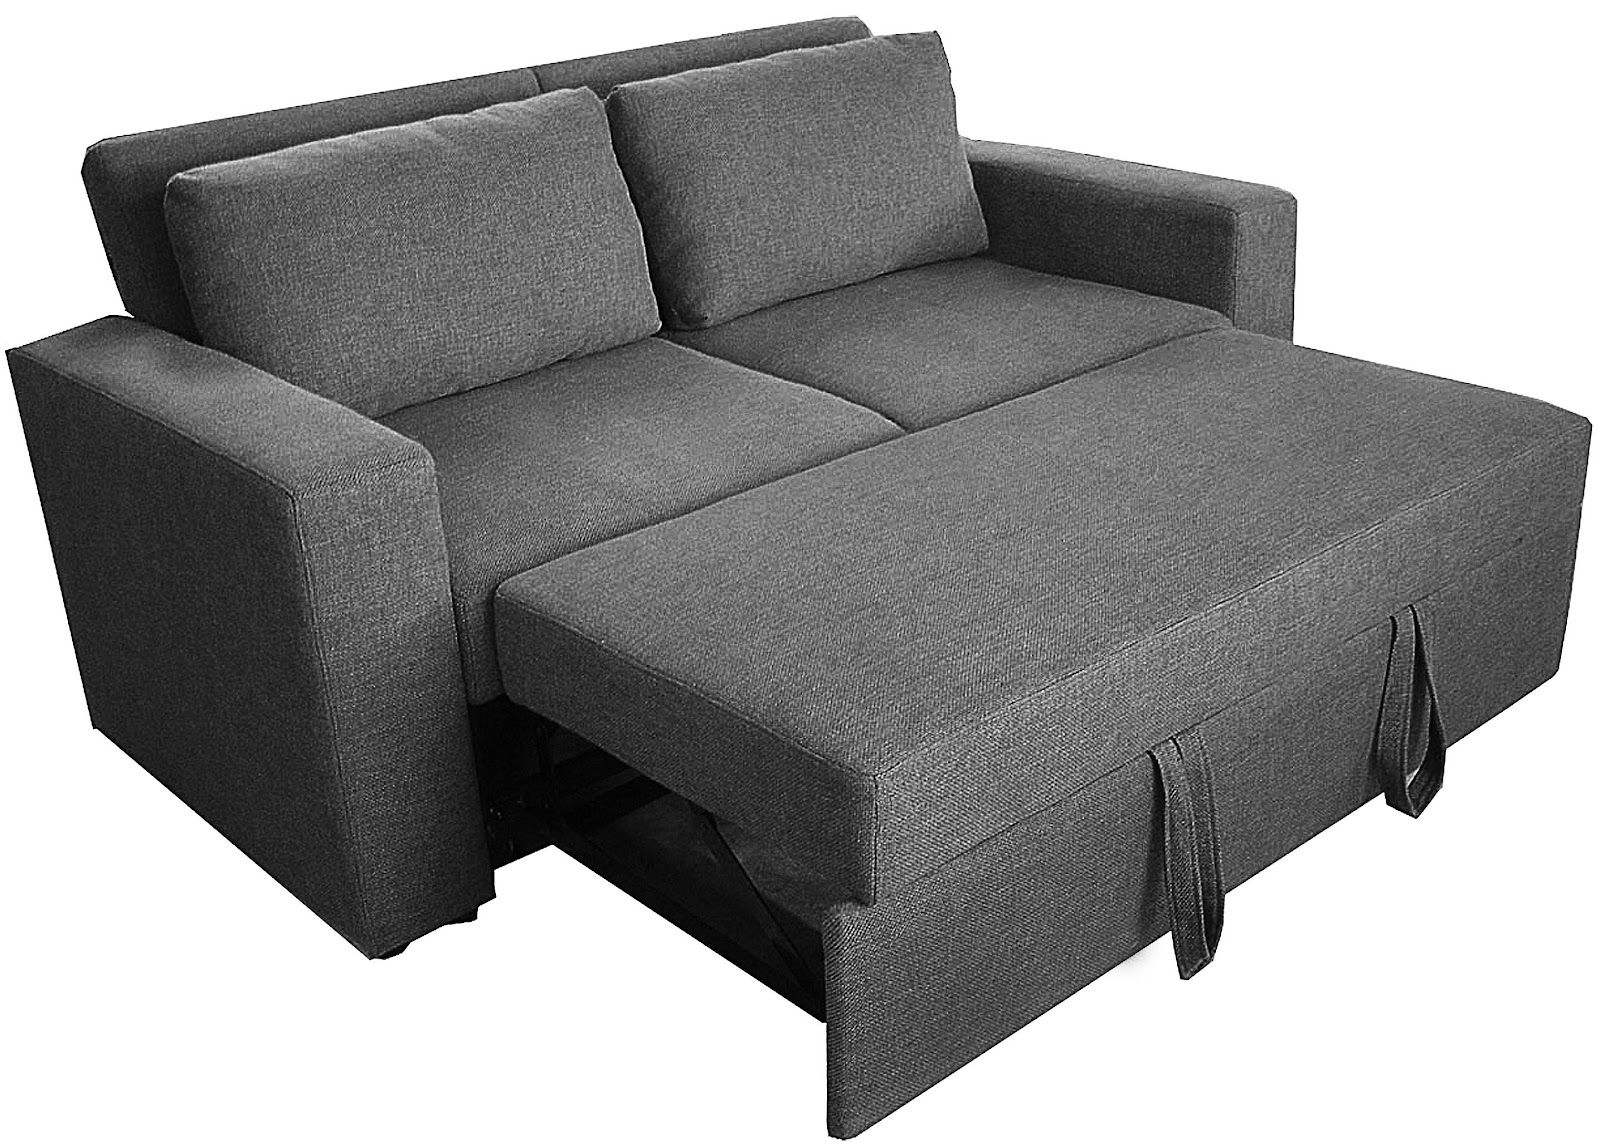 Small Sleeper Sofa Pull Out Couch Ikea